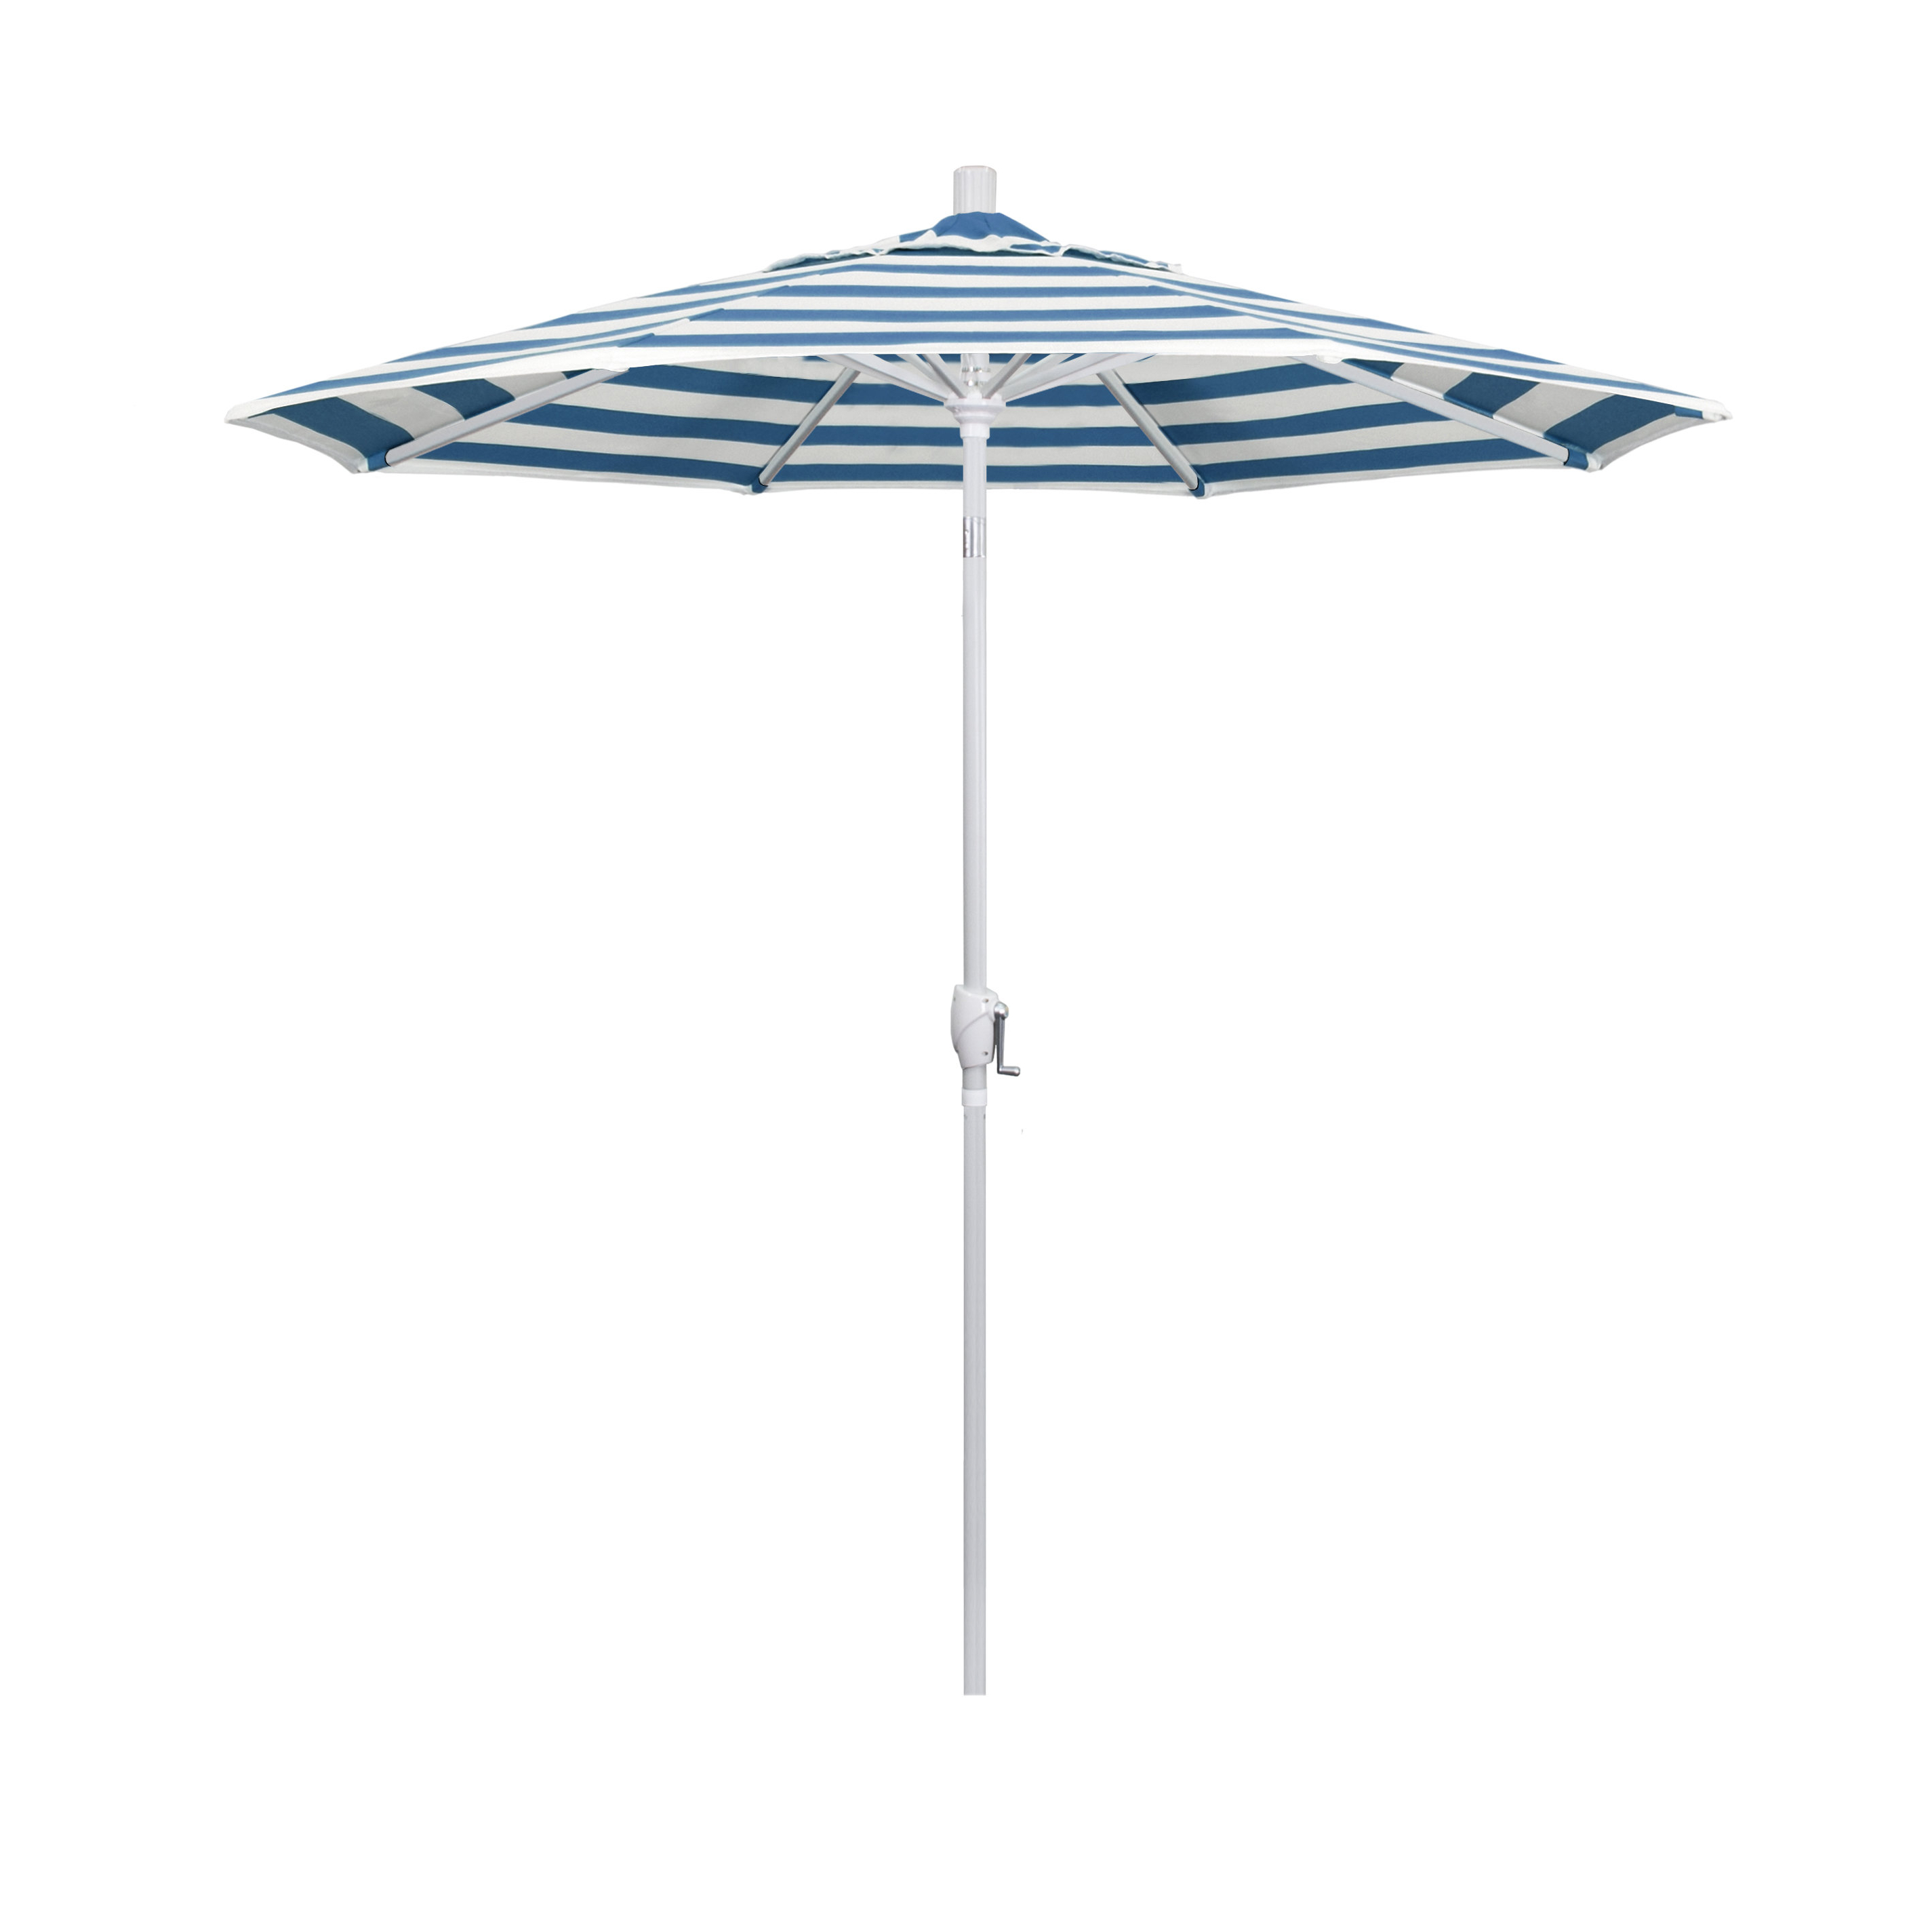 Wallach Market Sunbrella Umbrellas With Famous (View 3 of 20)